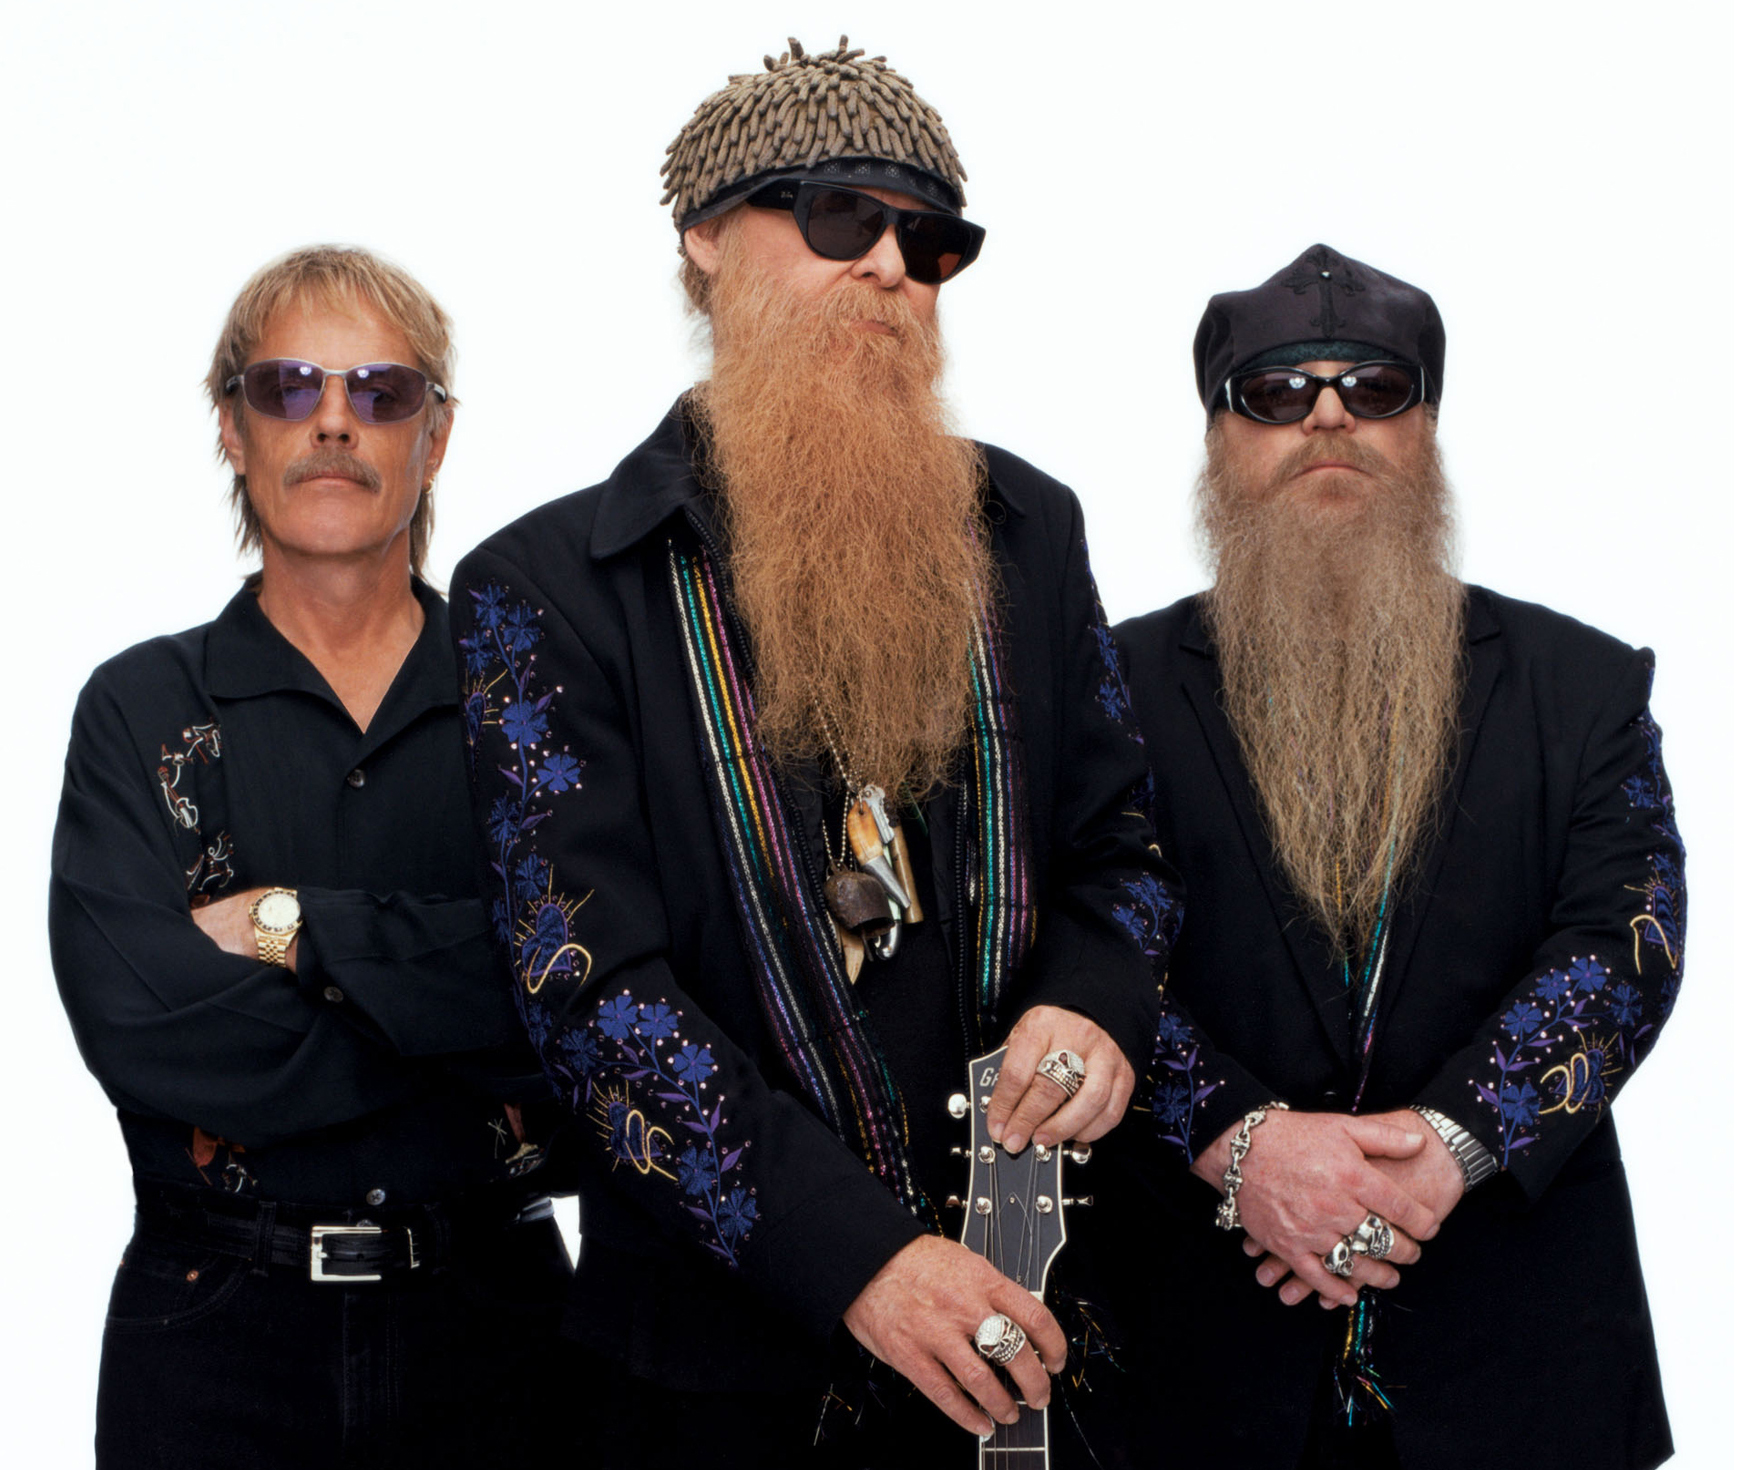 zz top beard images galleries with a bite. Black Bedroom Furniture Sets. Home Design Ideas